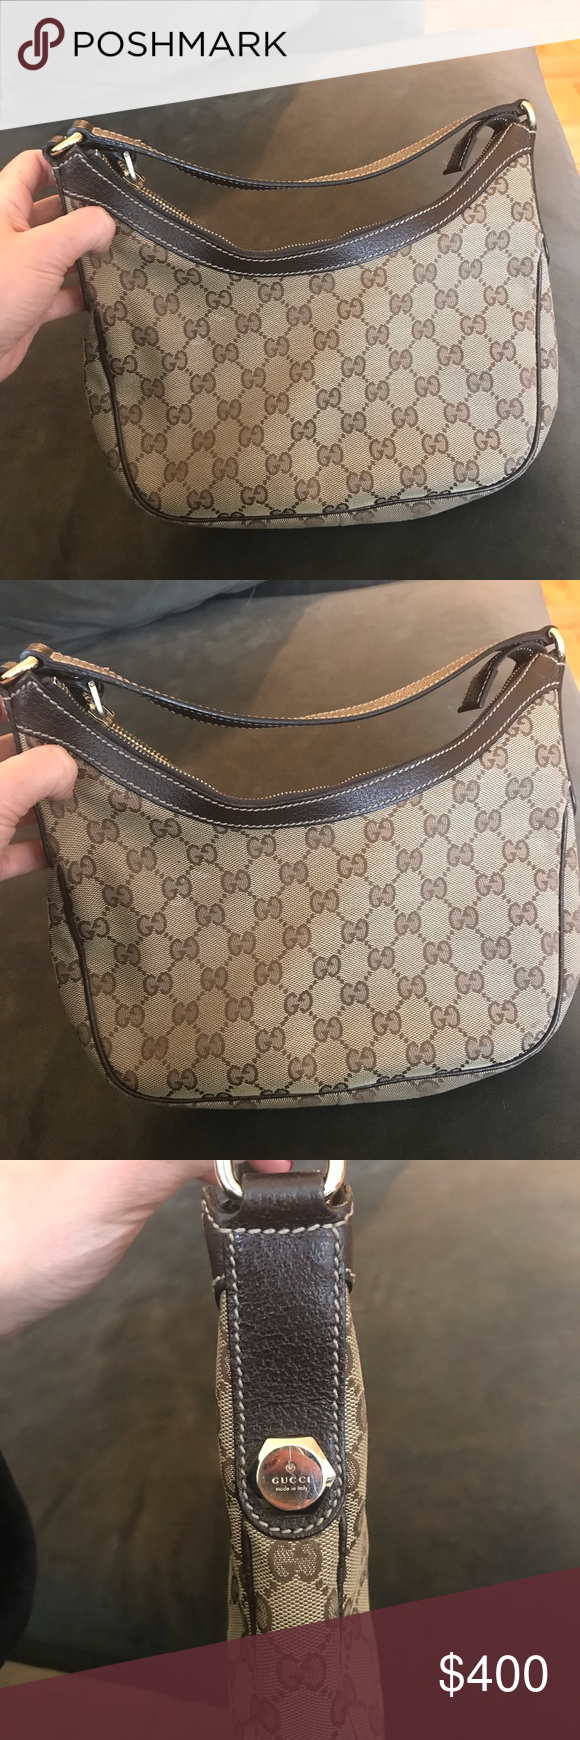 2be79df767c0 authentic Gucci purse Gucci authentic vintage. Excellent condition with a  spot of discoloration (view in first photo). Also a tiny bit of usage in  bottom ...